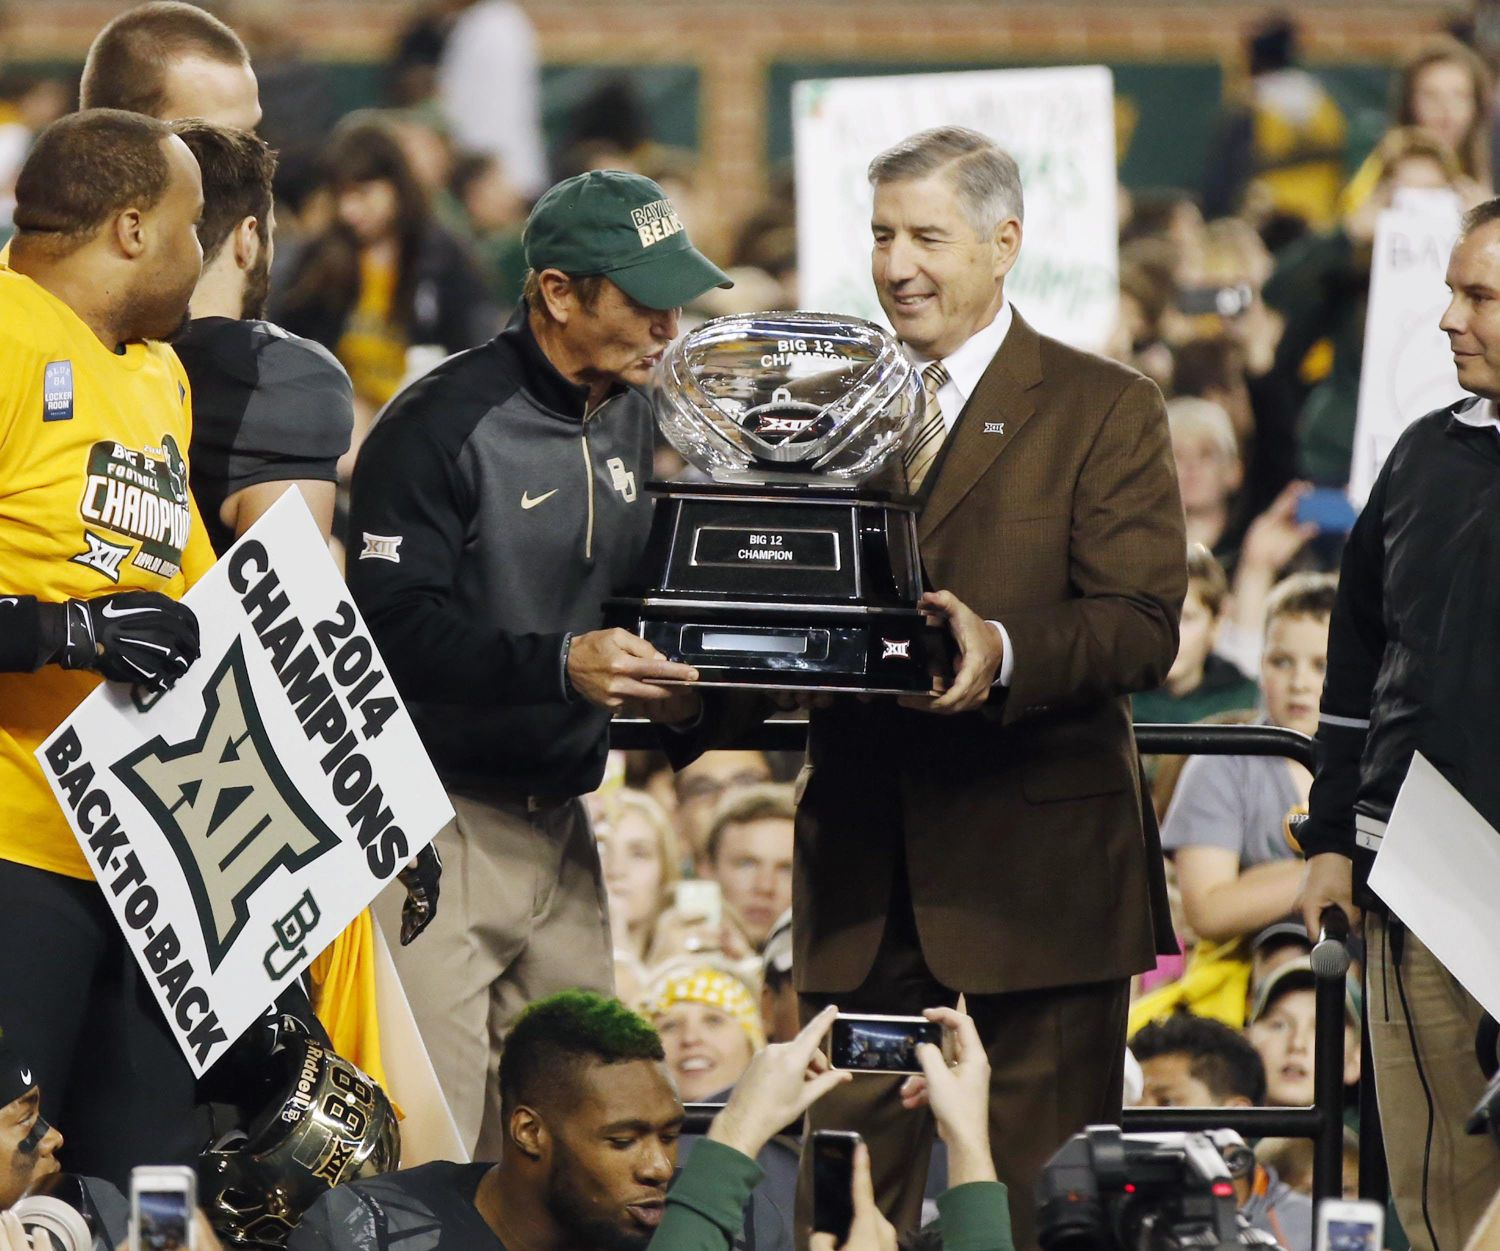 Brice Cherry: Great win, but was it enough? - WacoTrib.com: Baylor